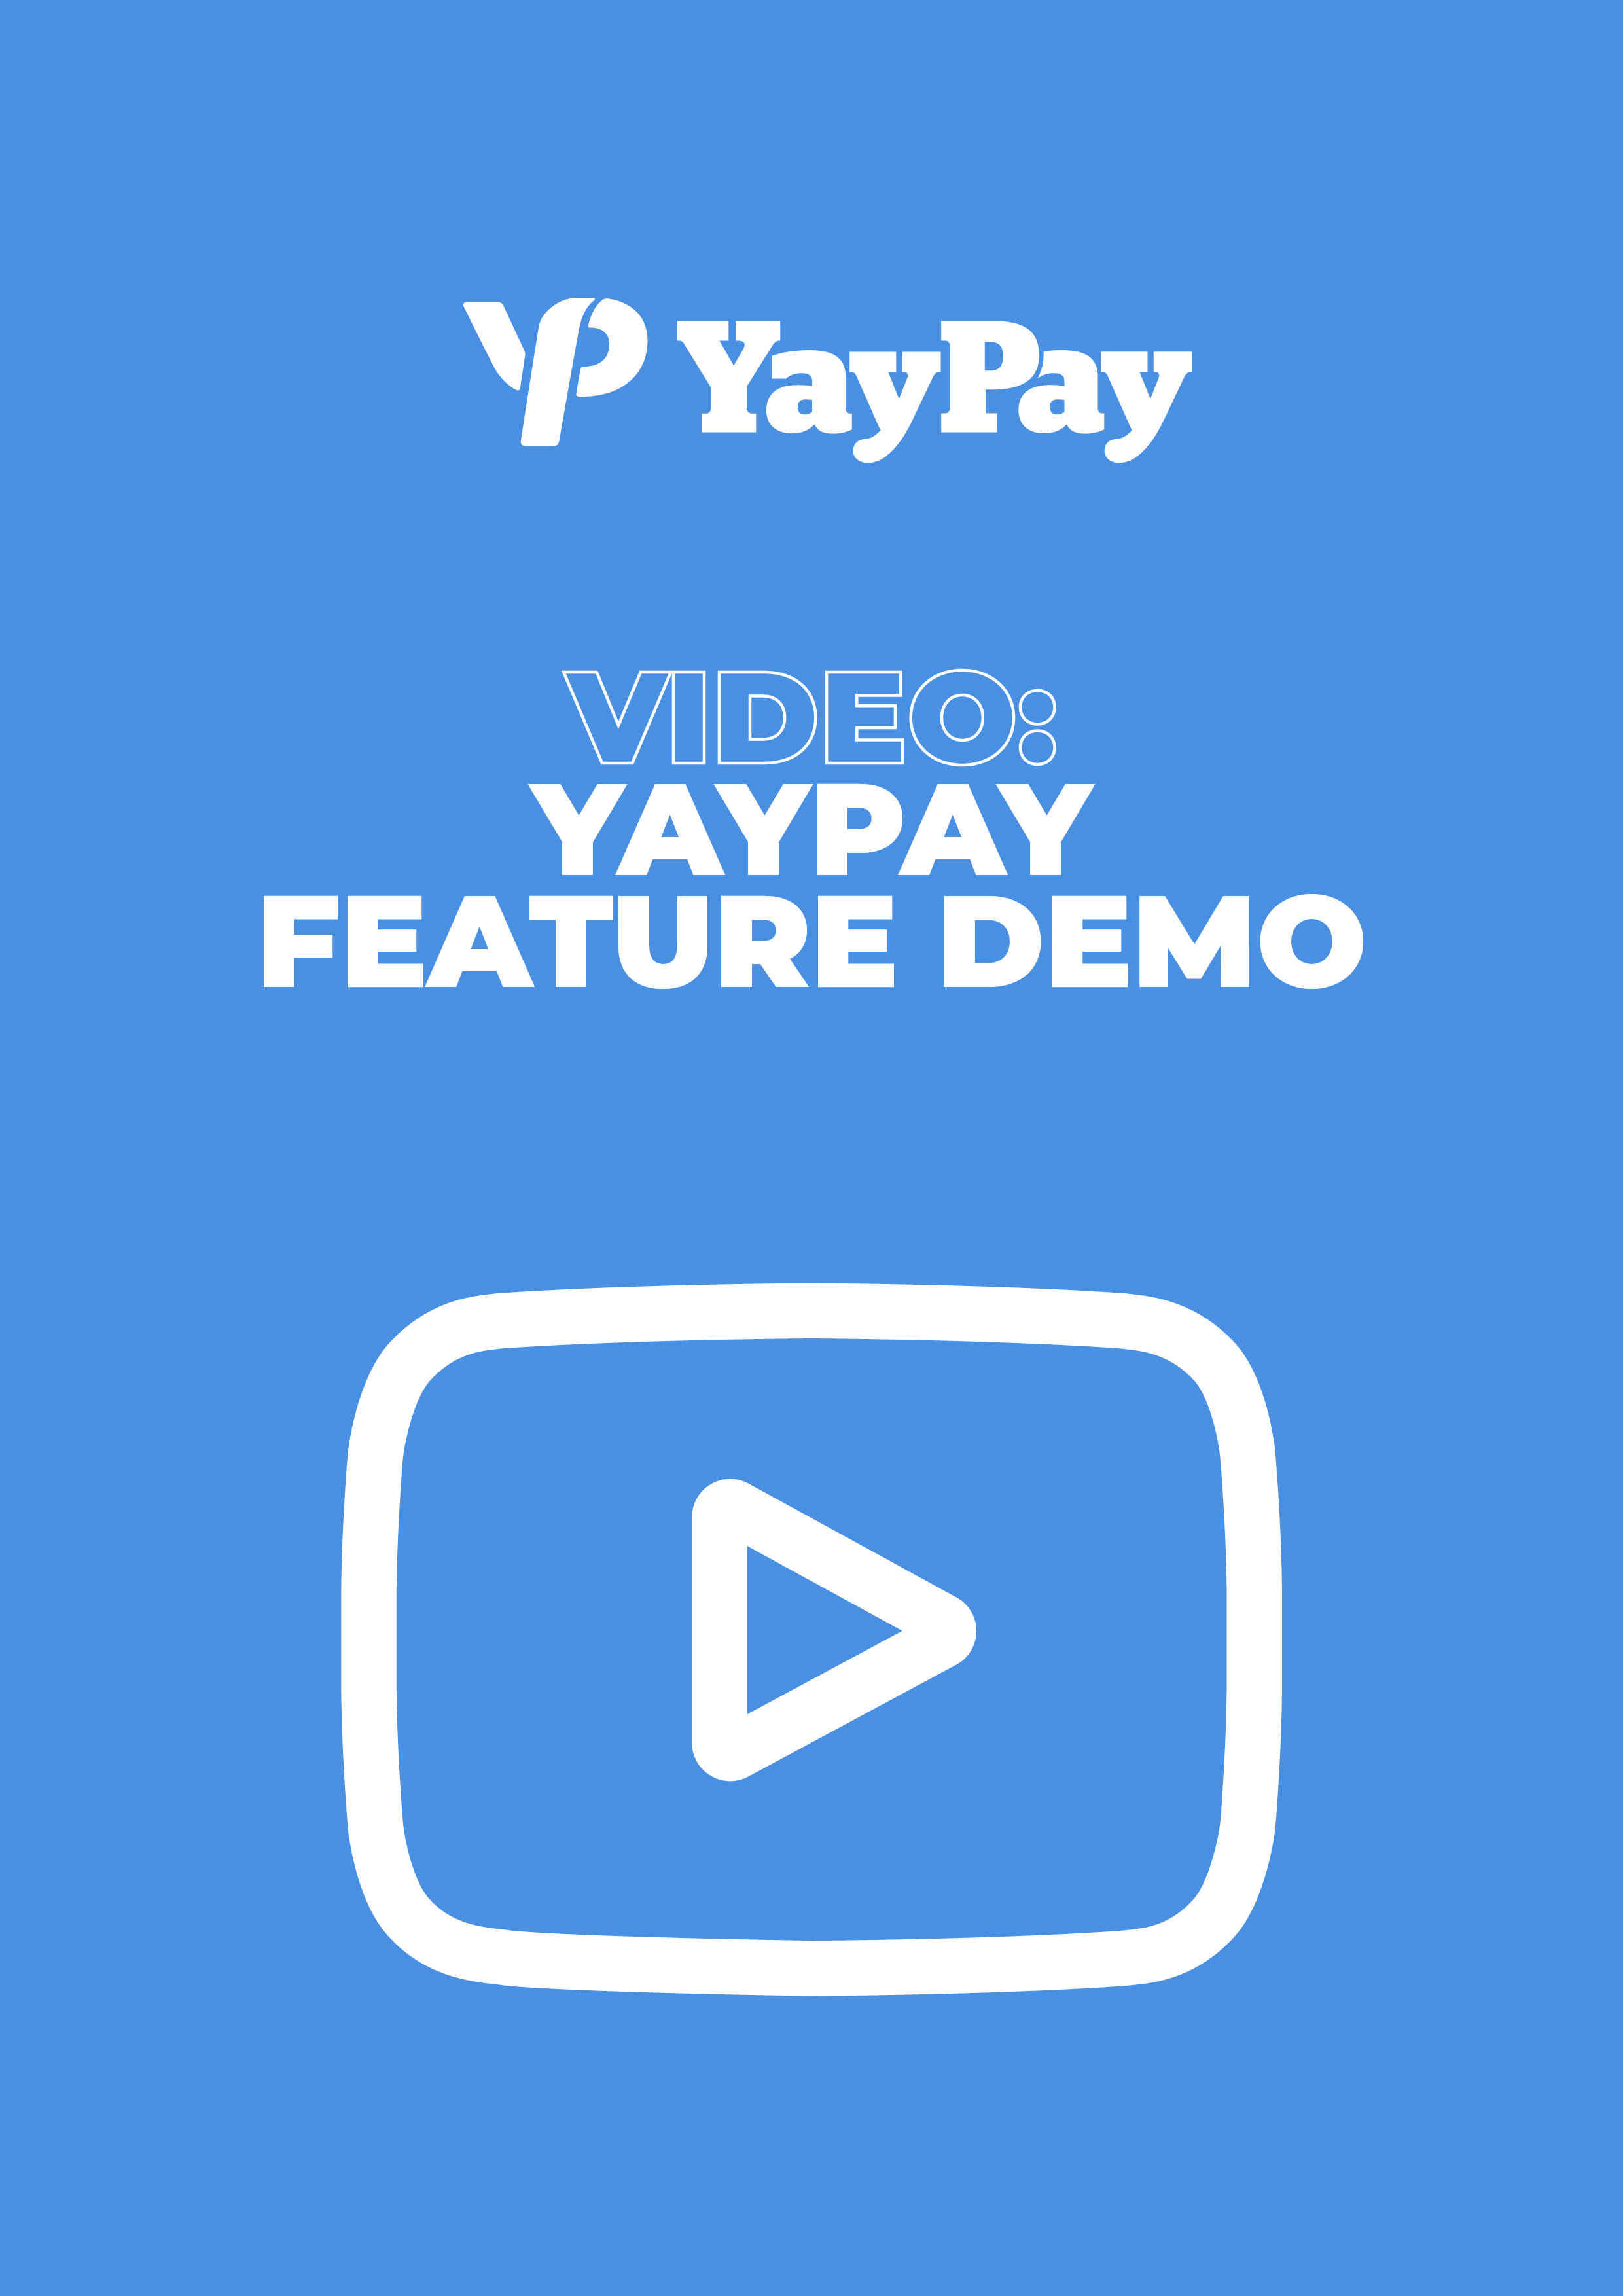 Video: YayPay Feature Demo